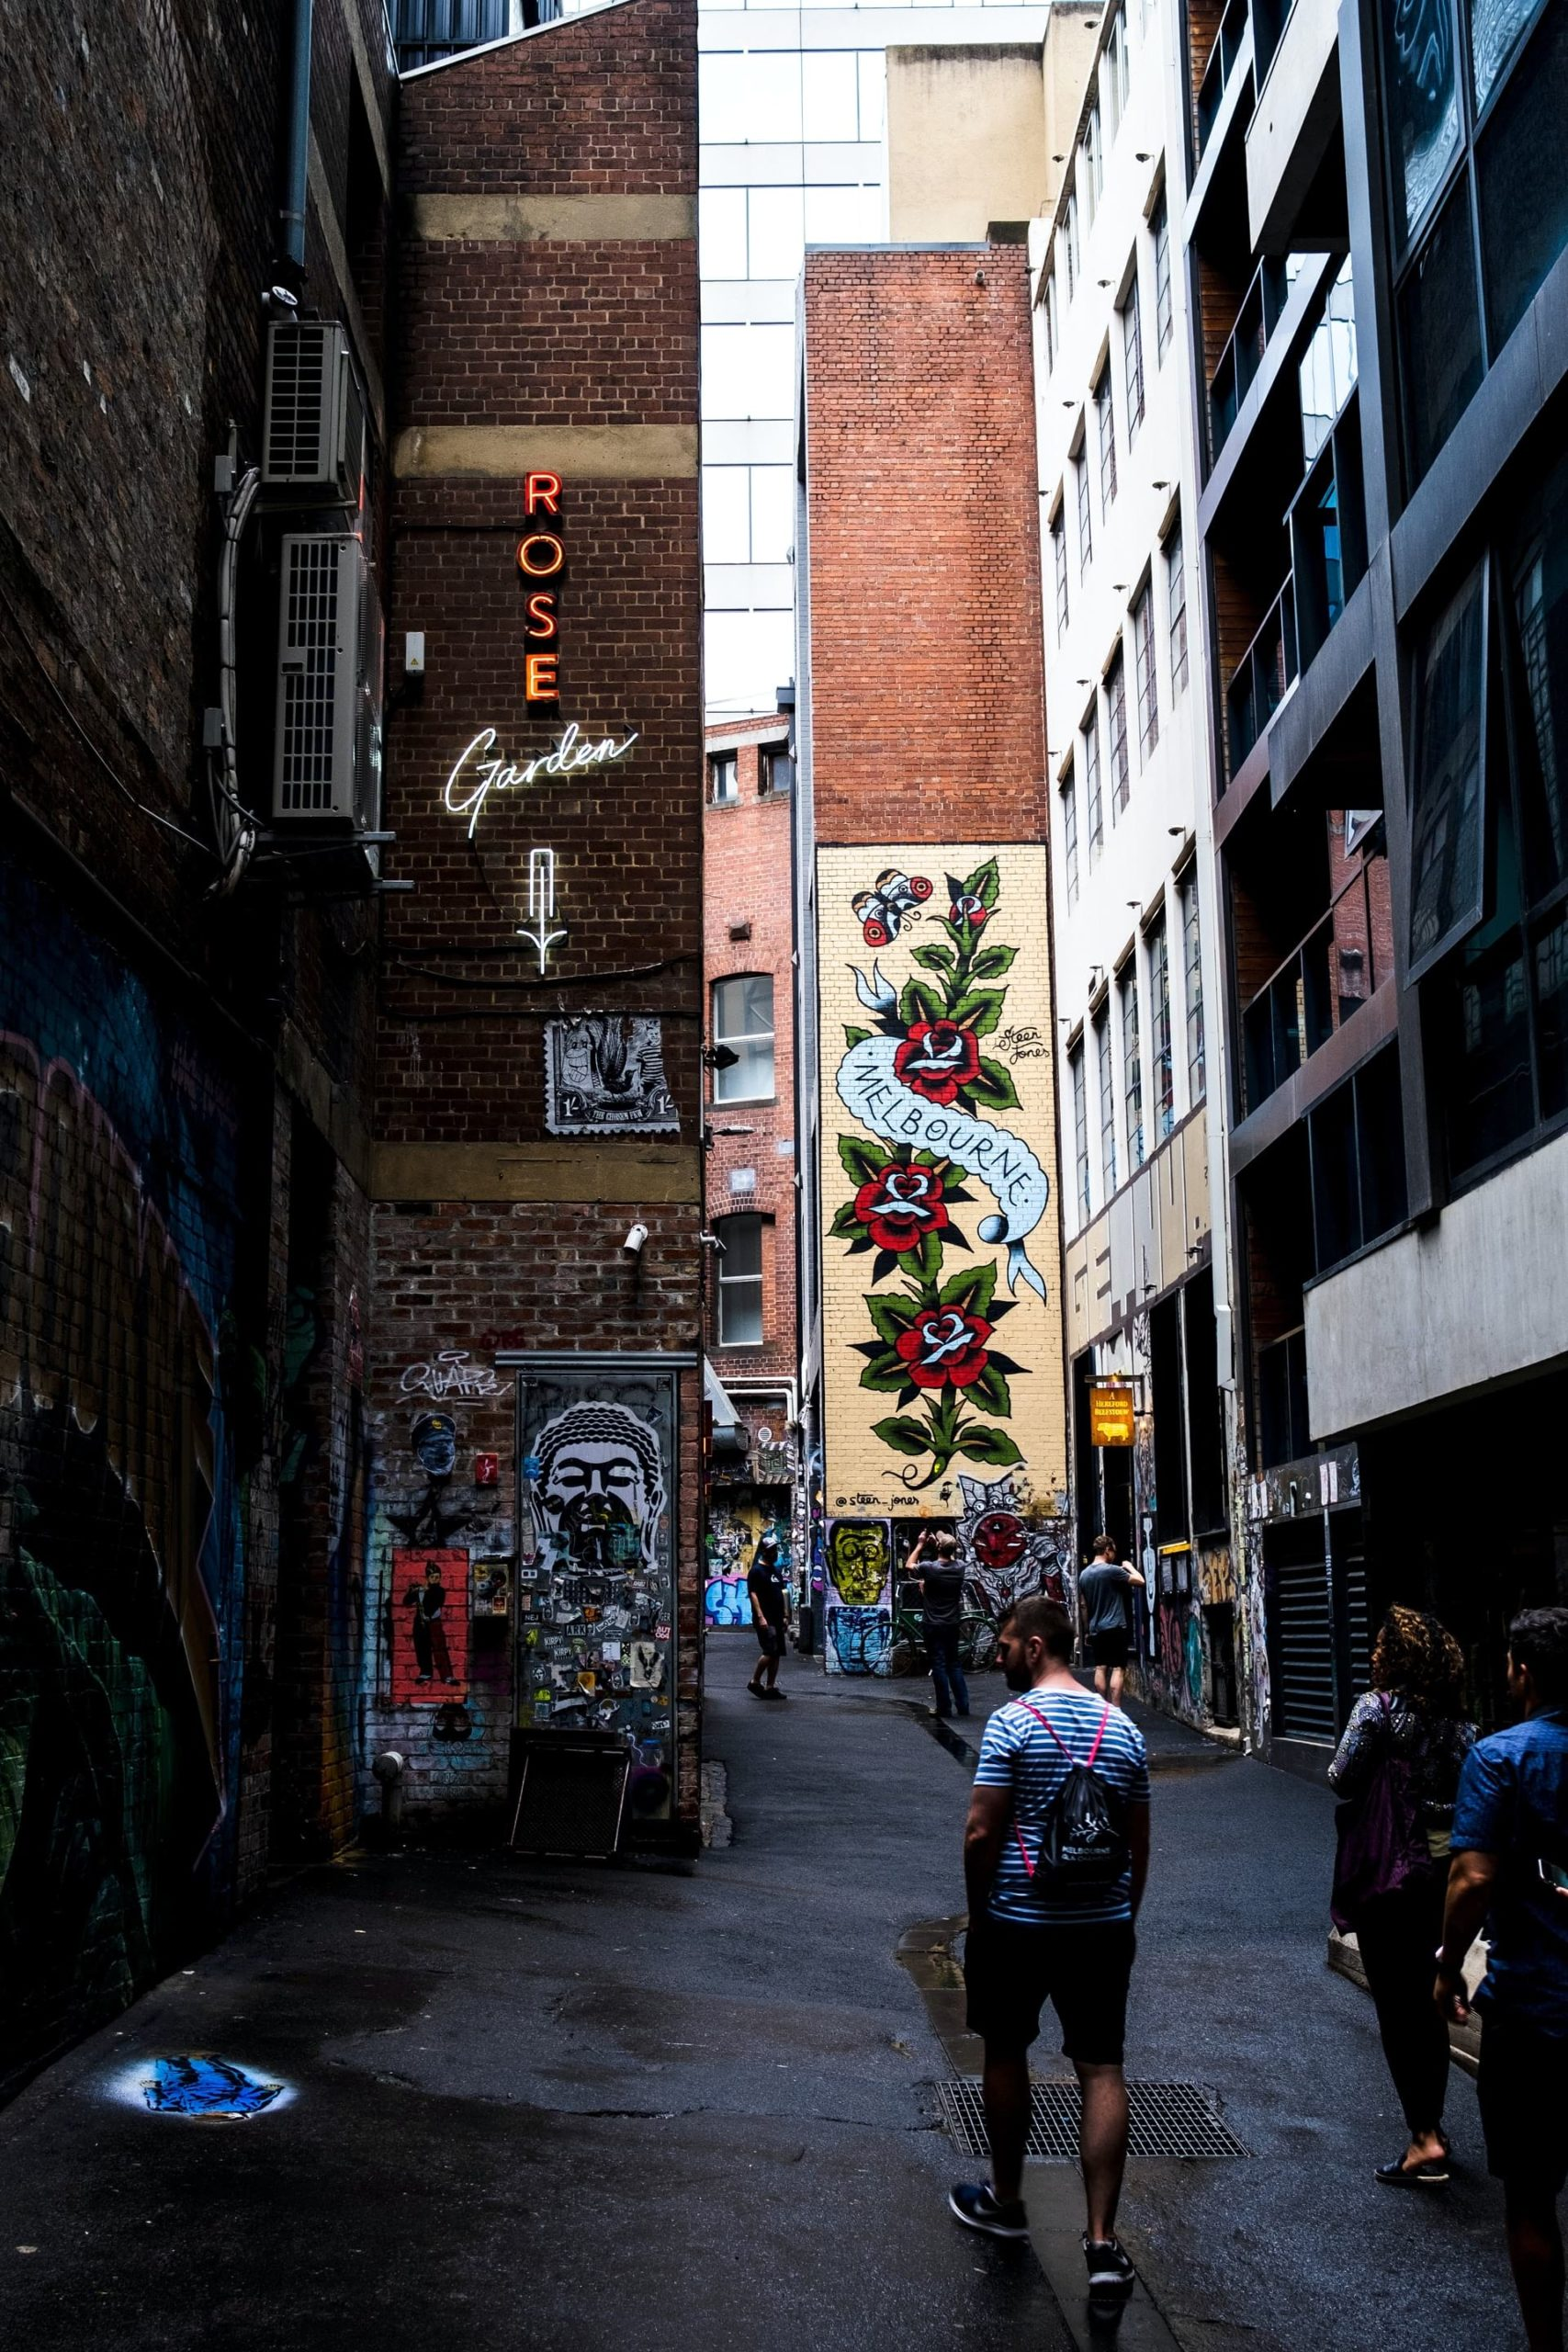 Famous laneway in Melbourne filled with Australians enjoying recreational activities